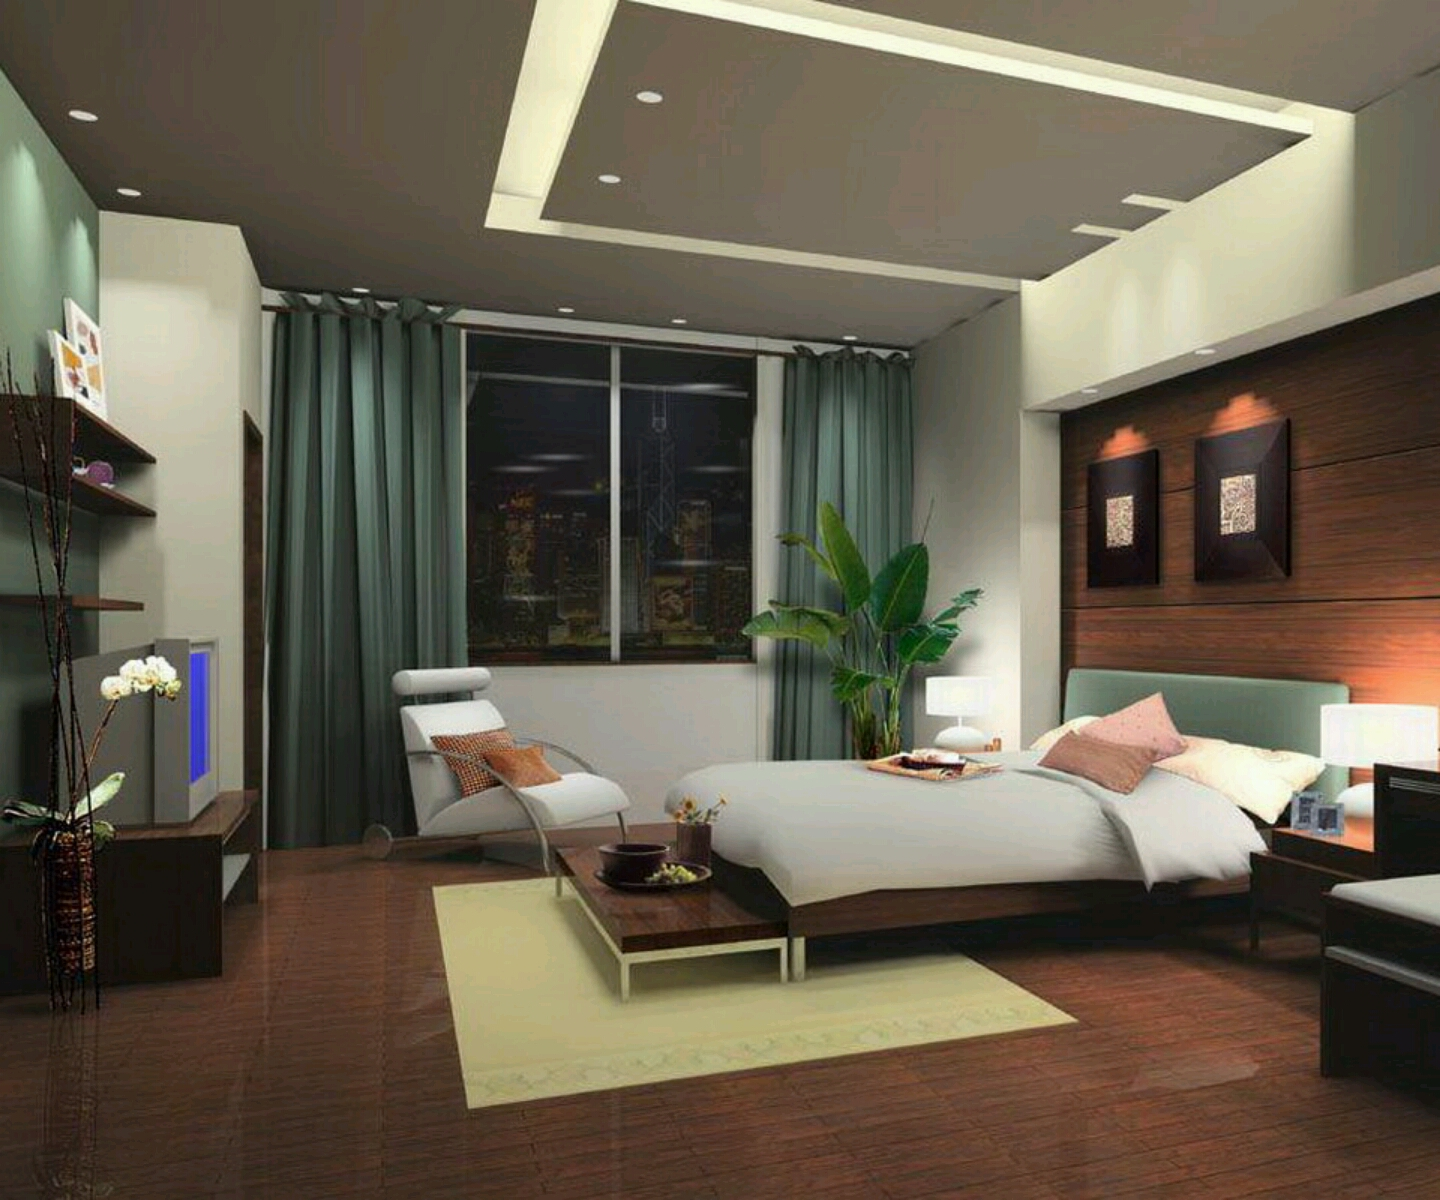 New home designs latest modern bedrooms designs best ideas - Apartment bedroom design ideas ...